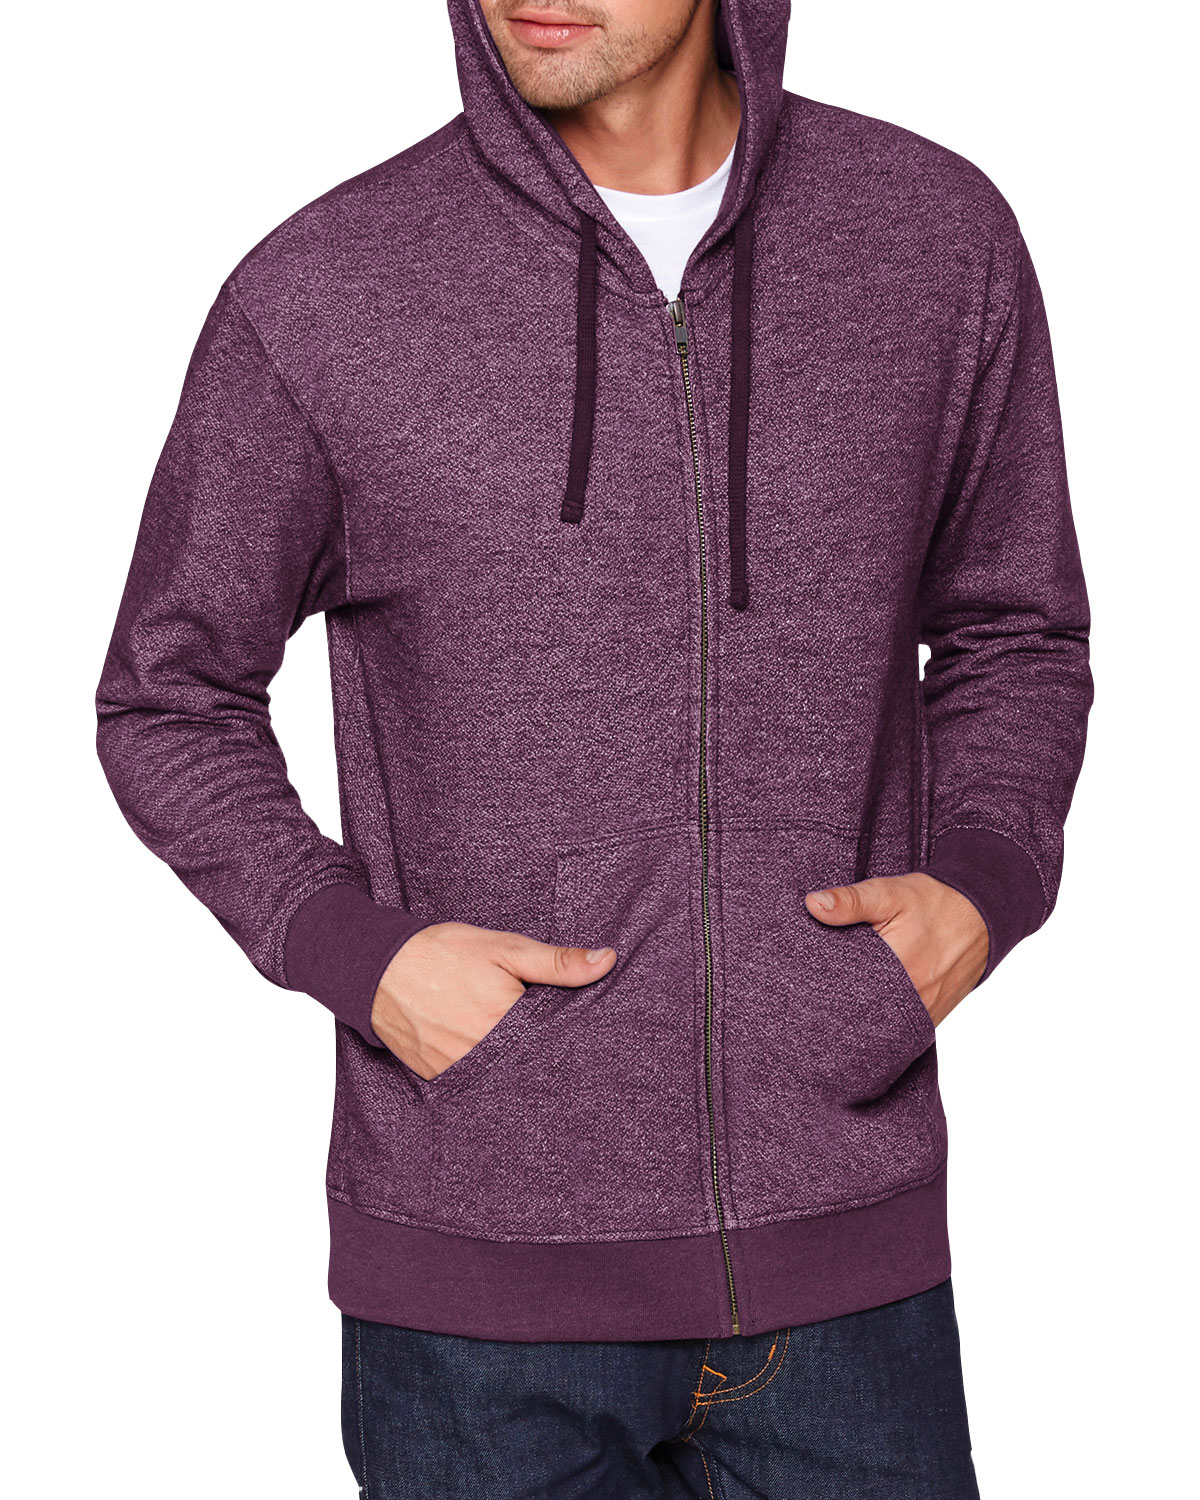 Next Level Adult Denim Fleece Full-Zip Hoody